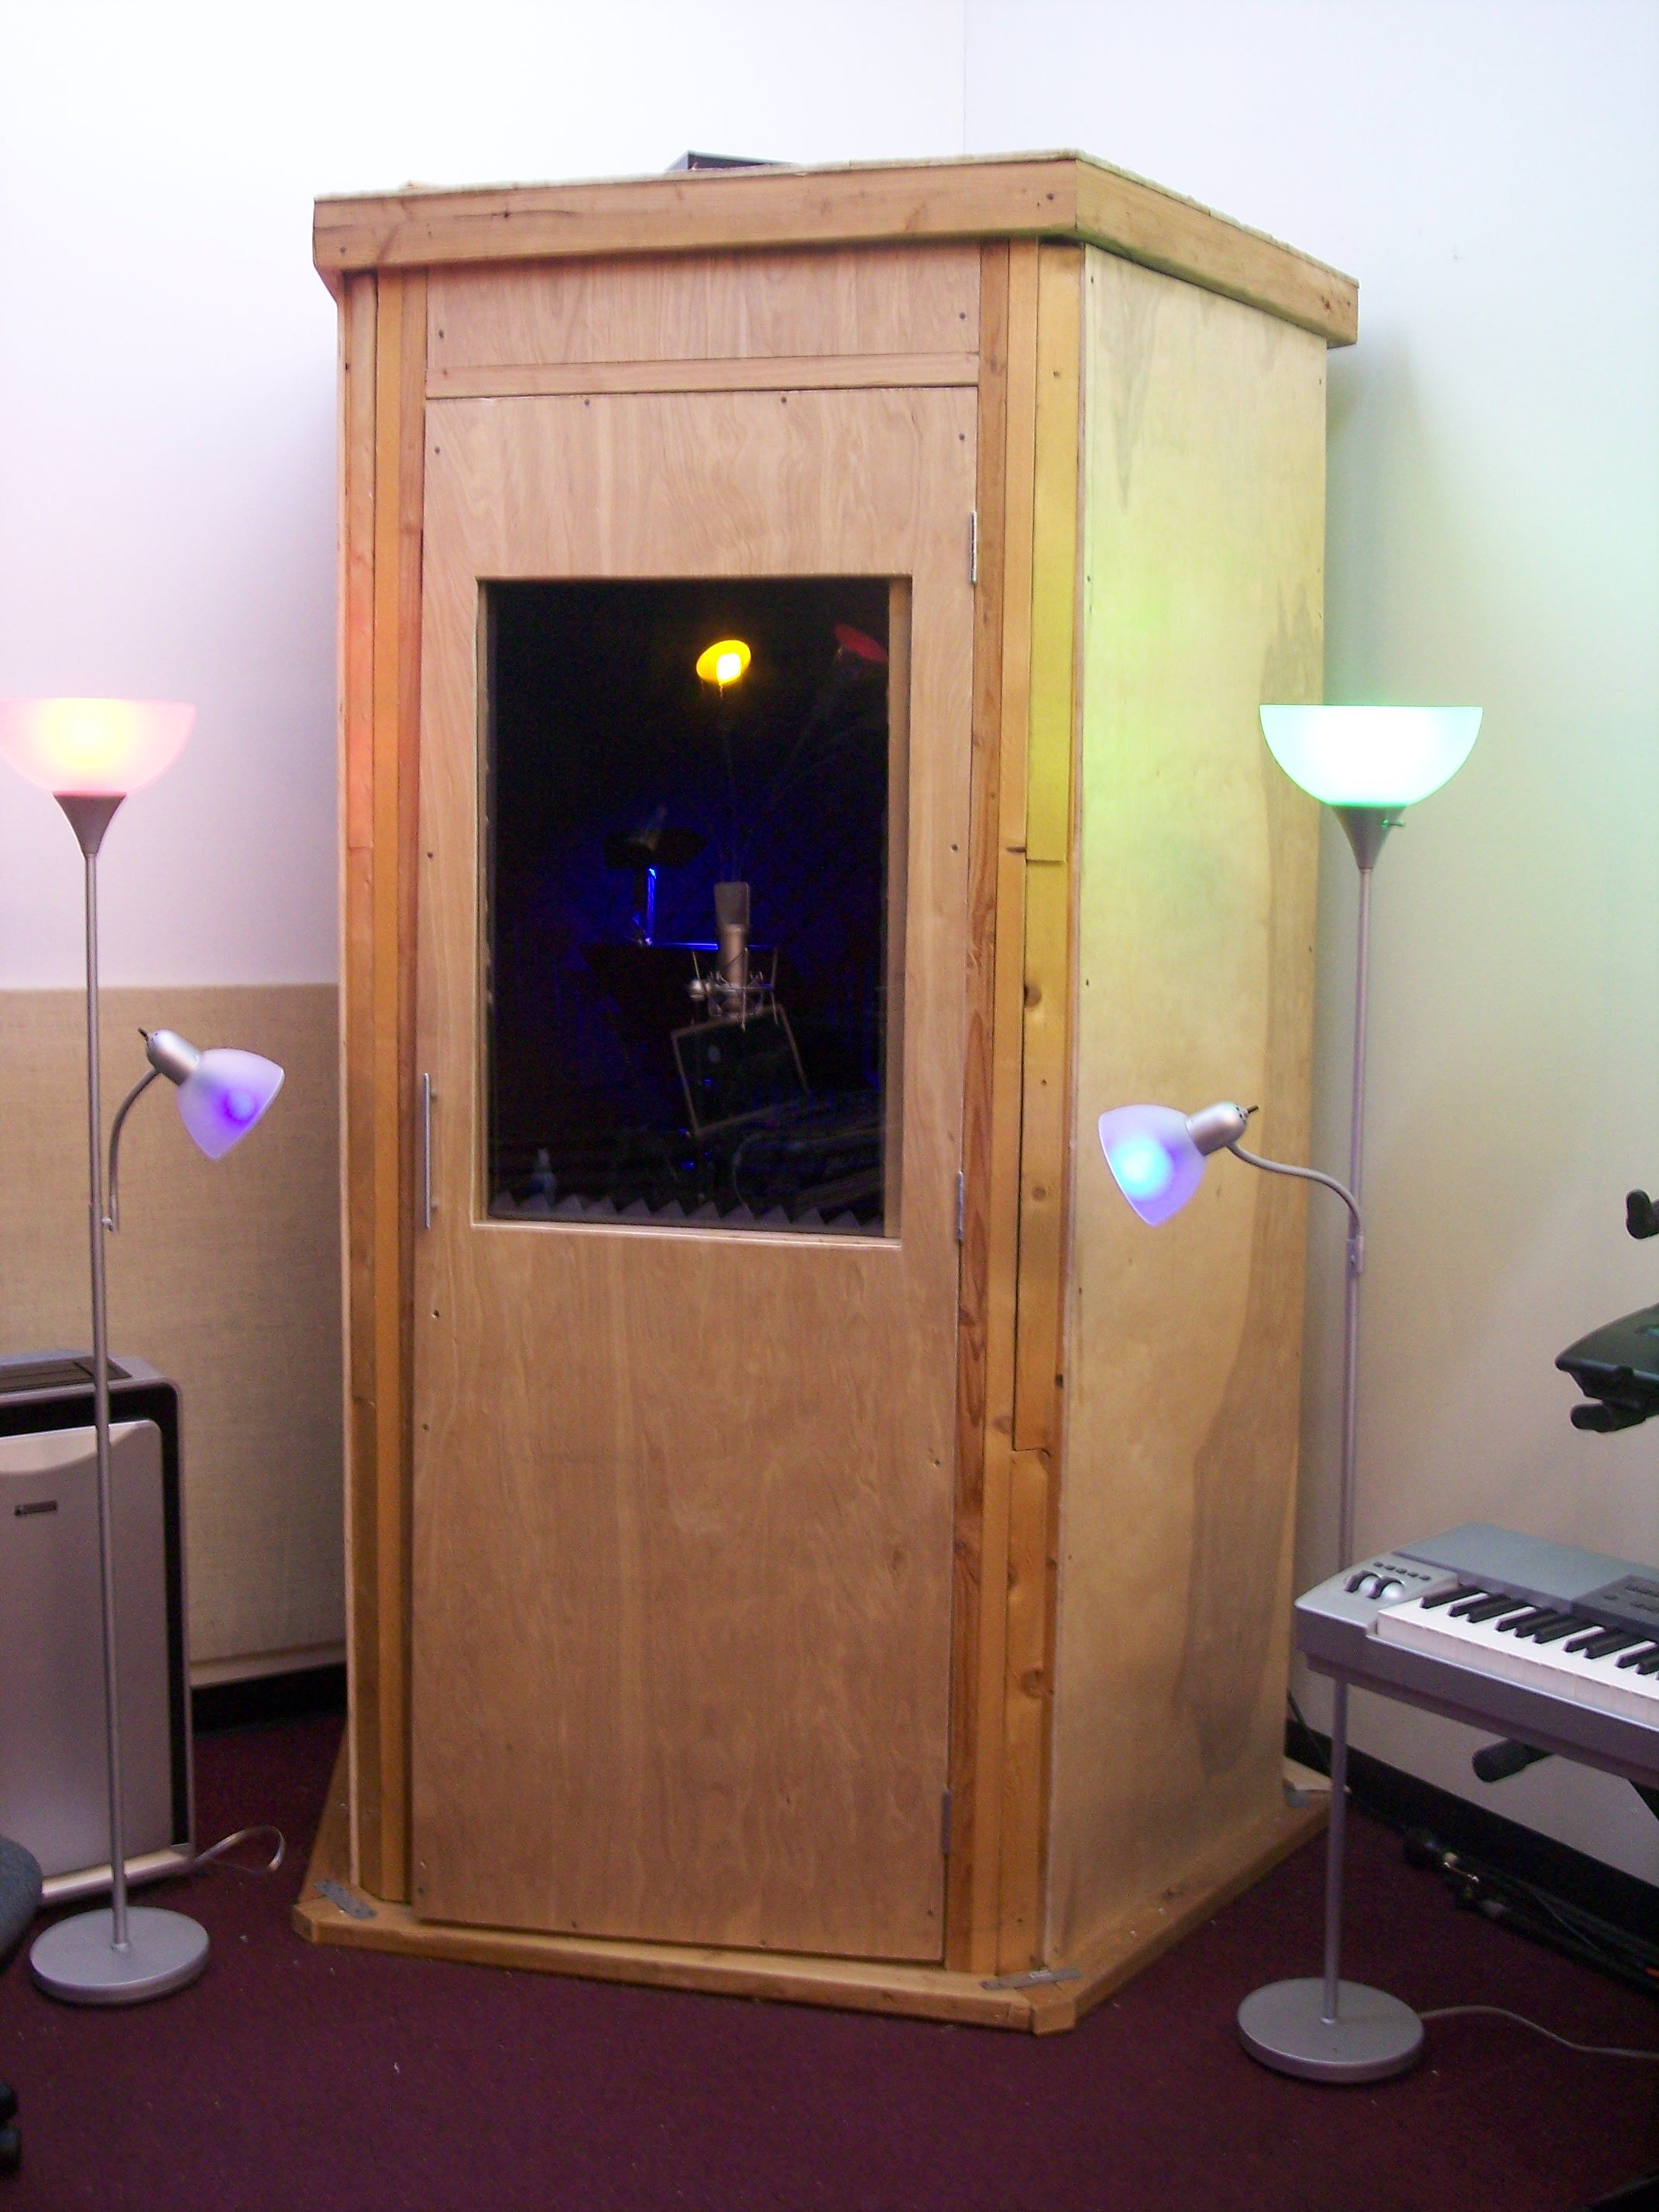 Diy home studio recording booth ideas home studio recording ideas pinterest booth ideas - Home recording studio design ideas ...